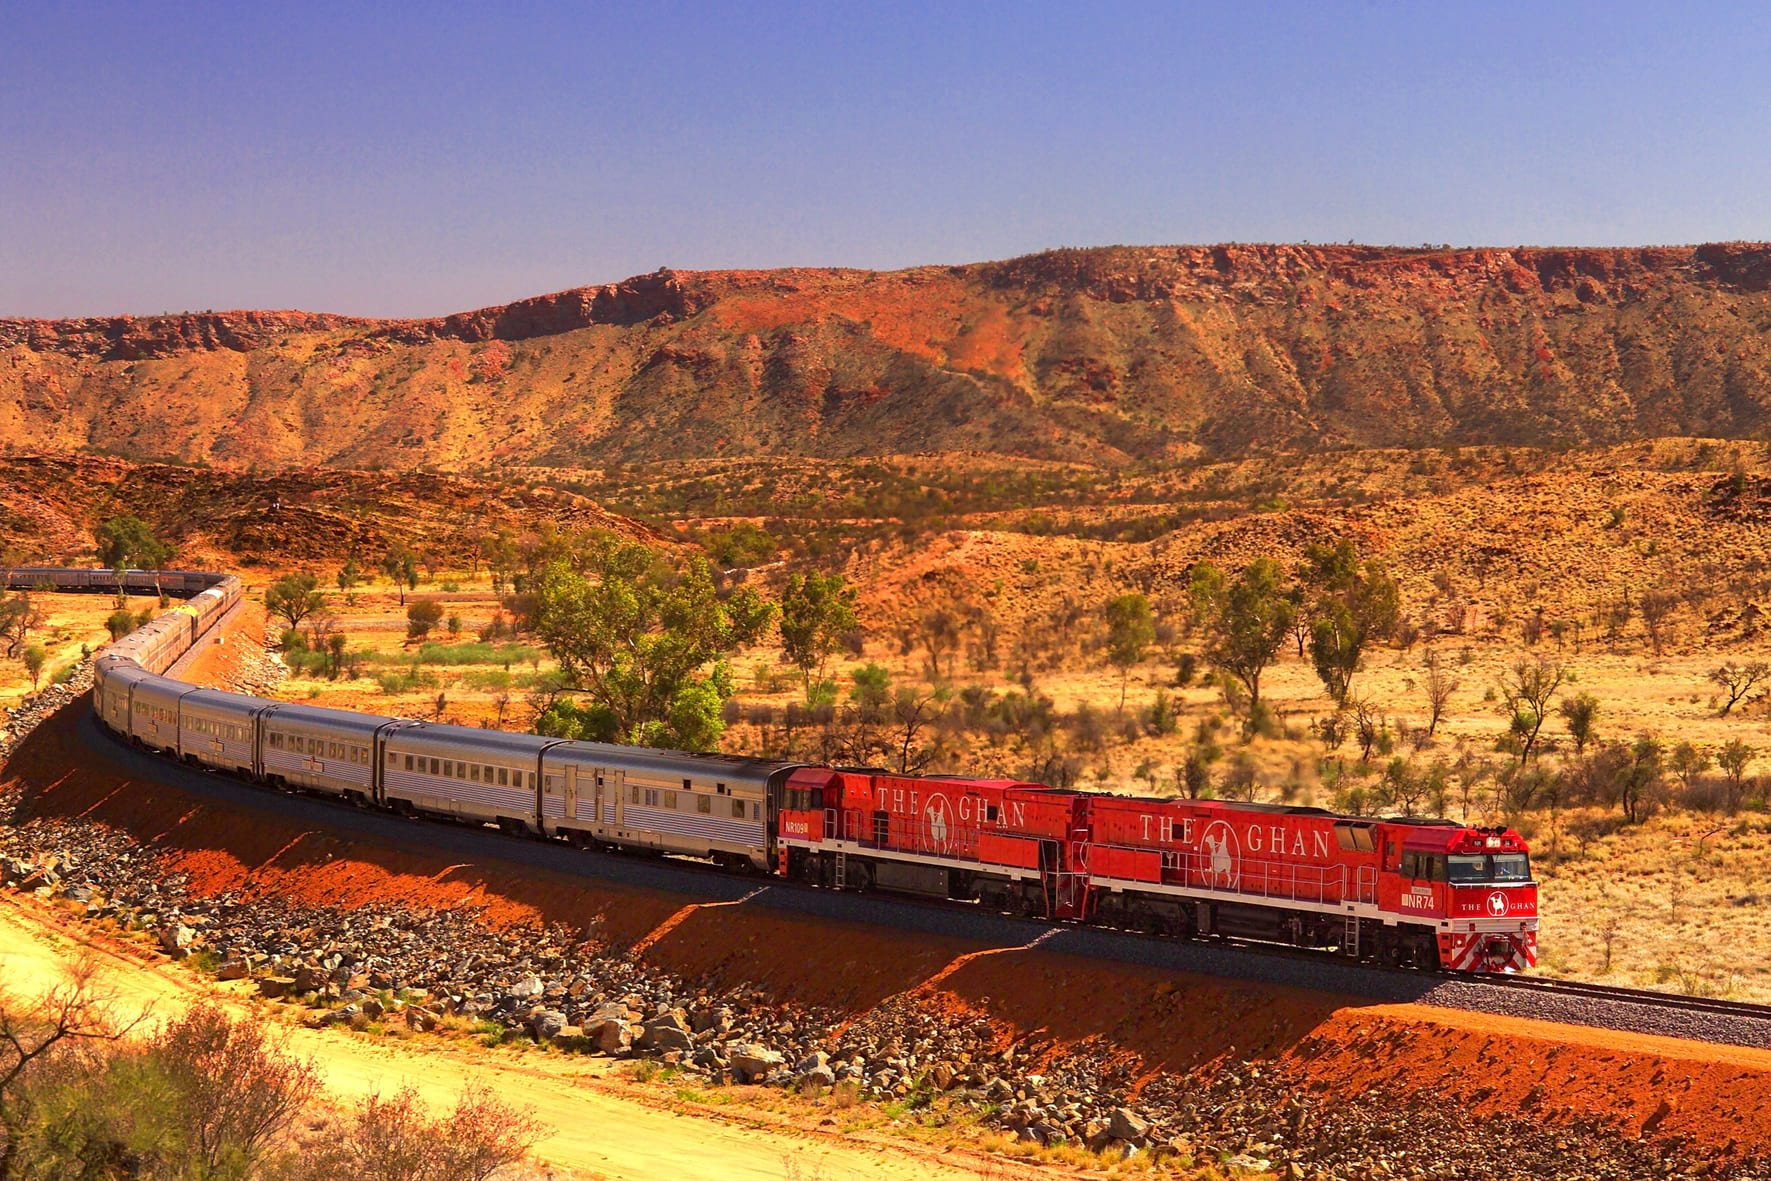 The Ghan - Australia's most beautiful train journey - in Central Australia